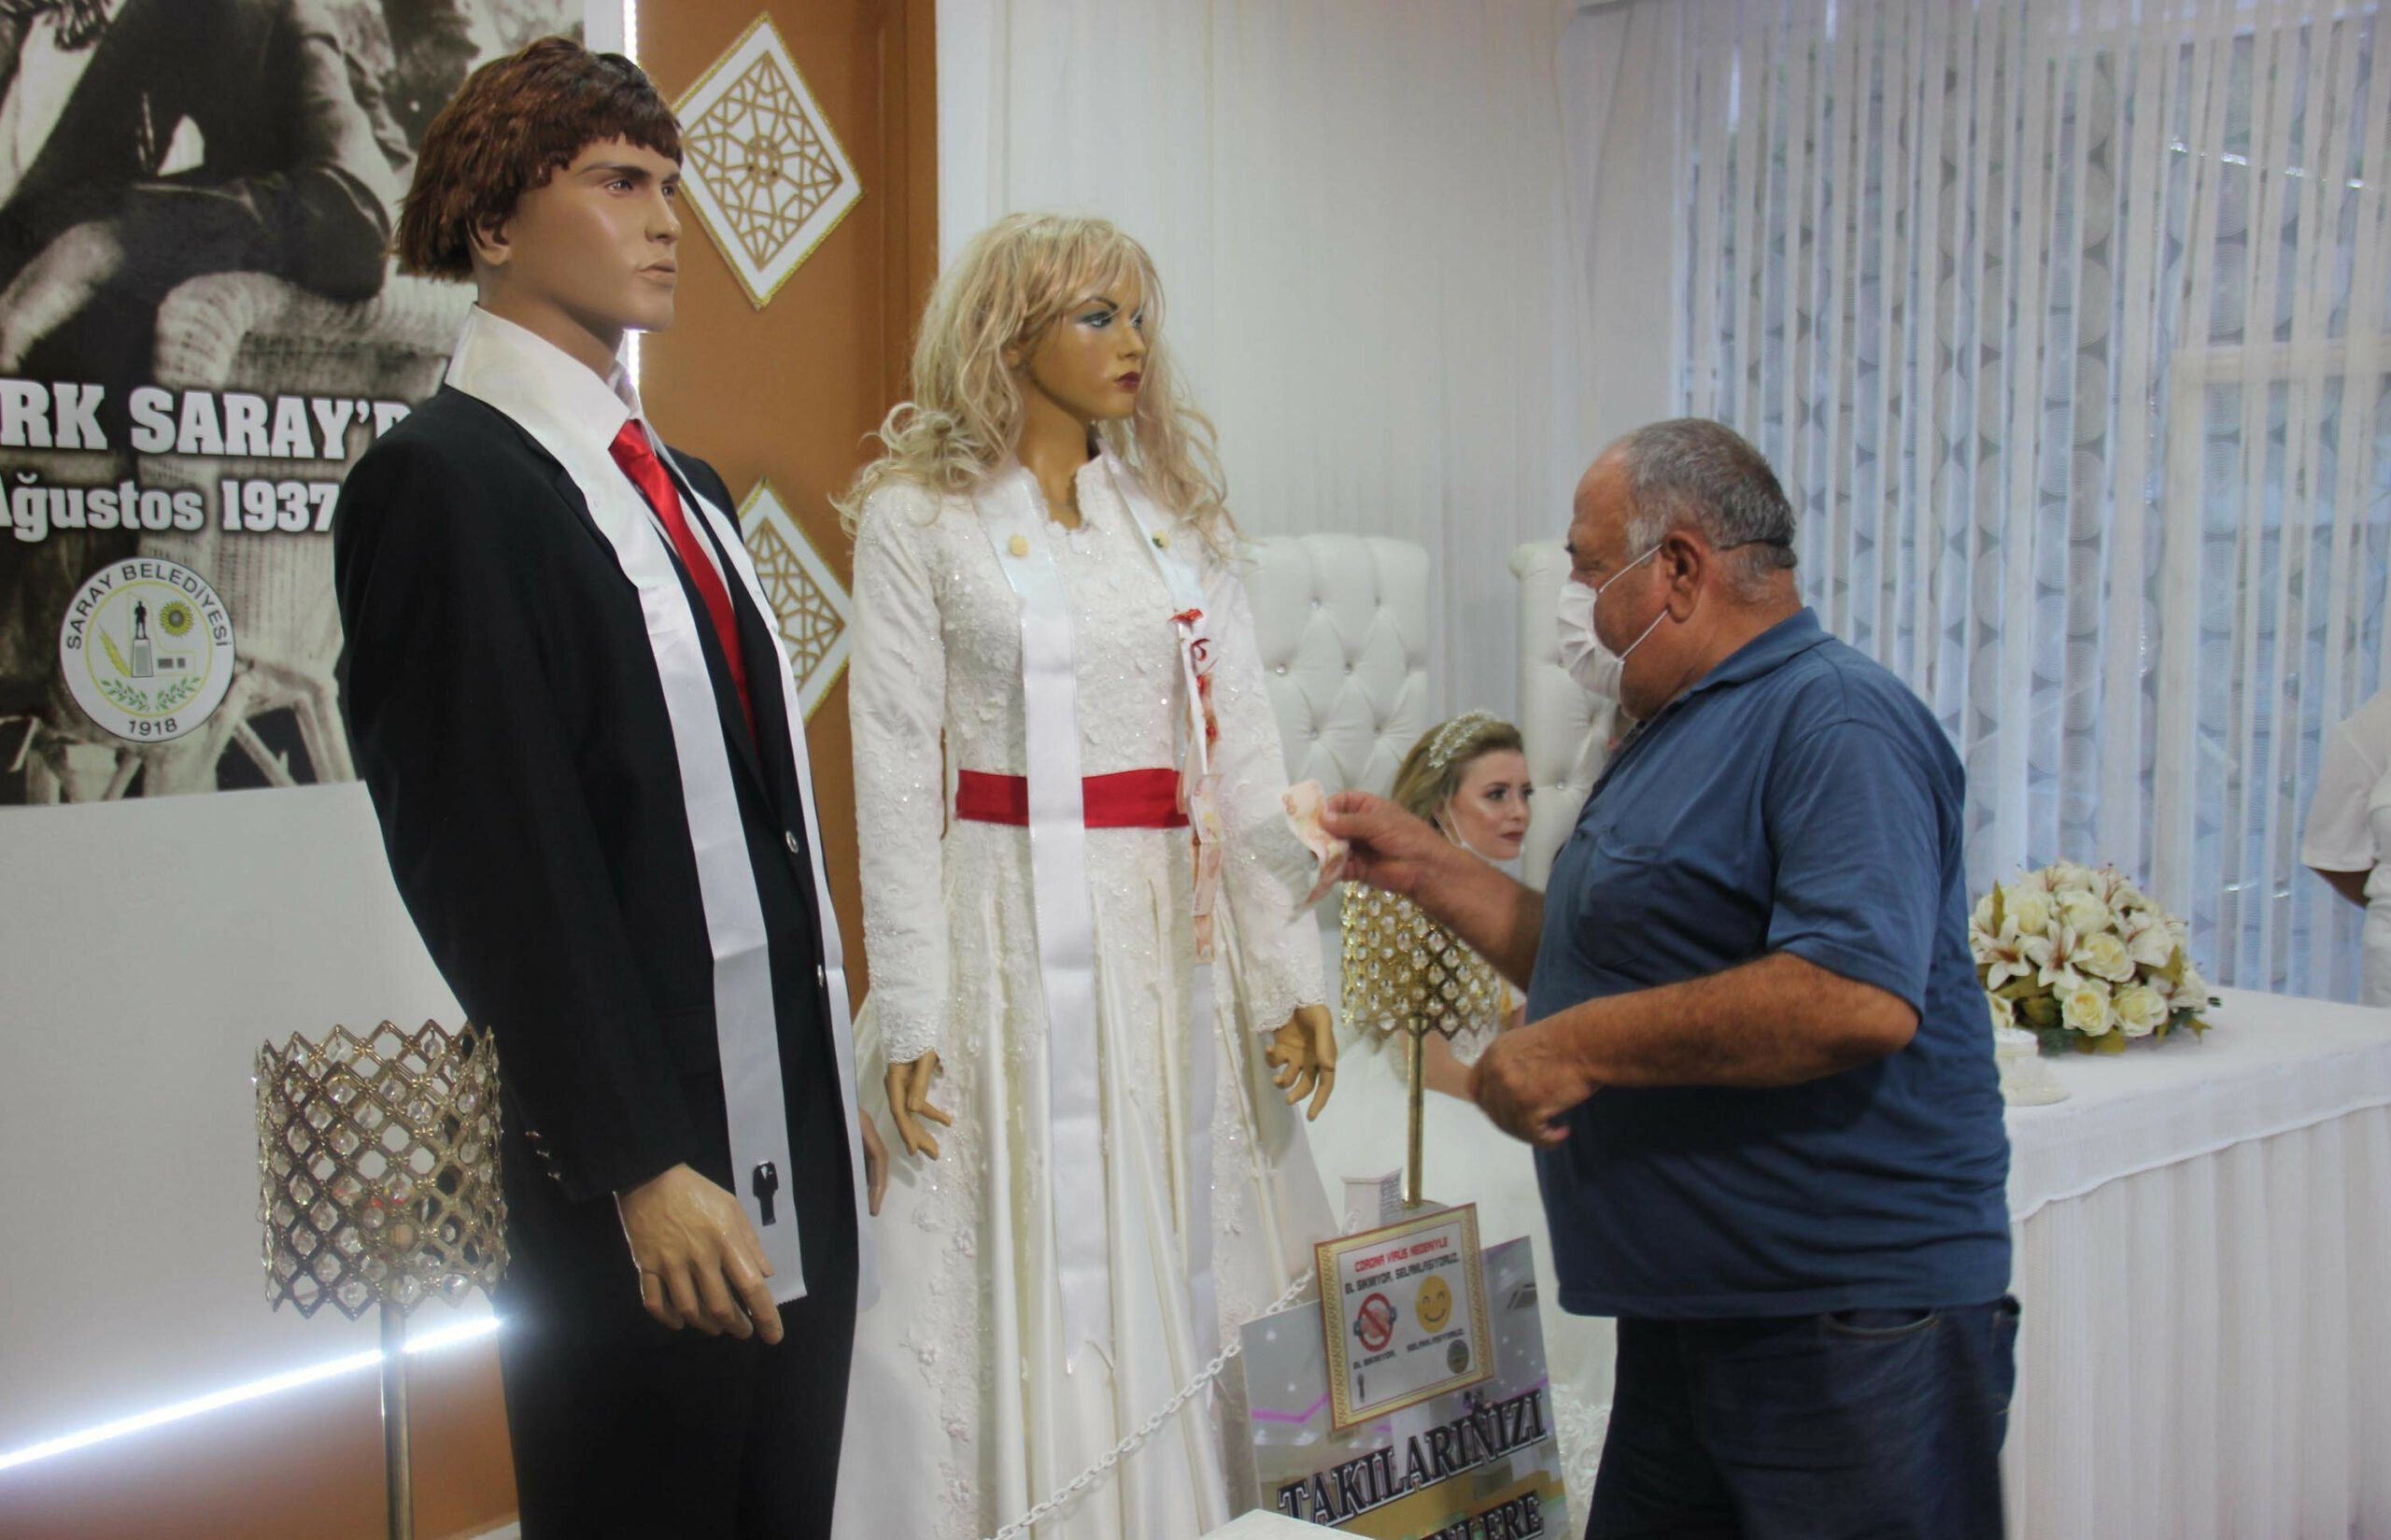 These Mannequins both make you laugh and scare 2 scaled